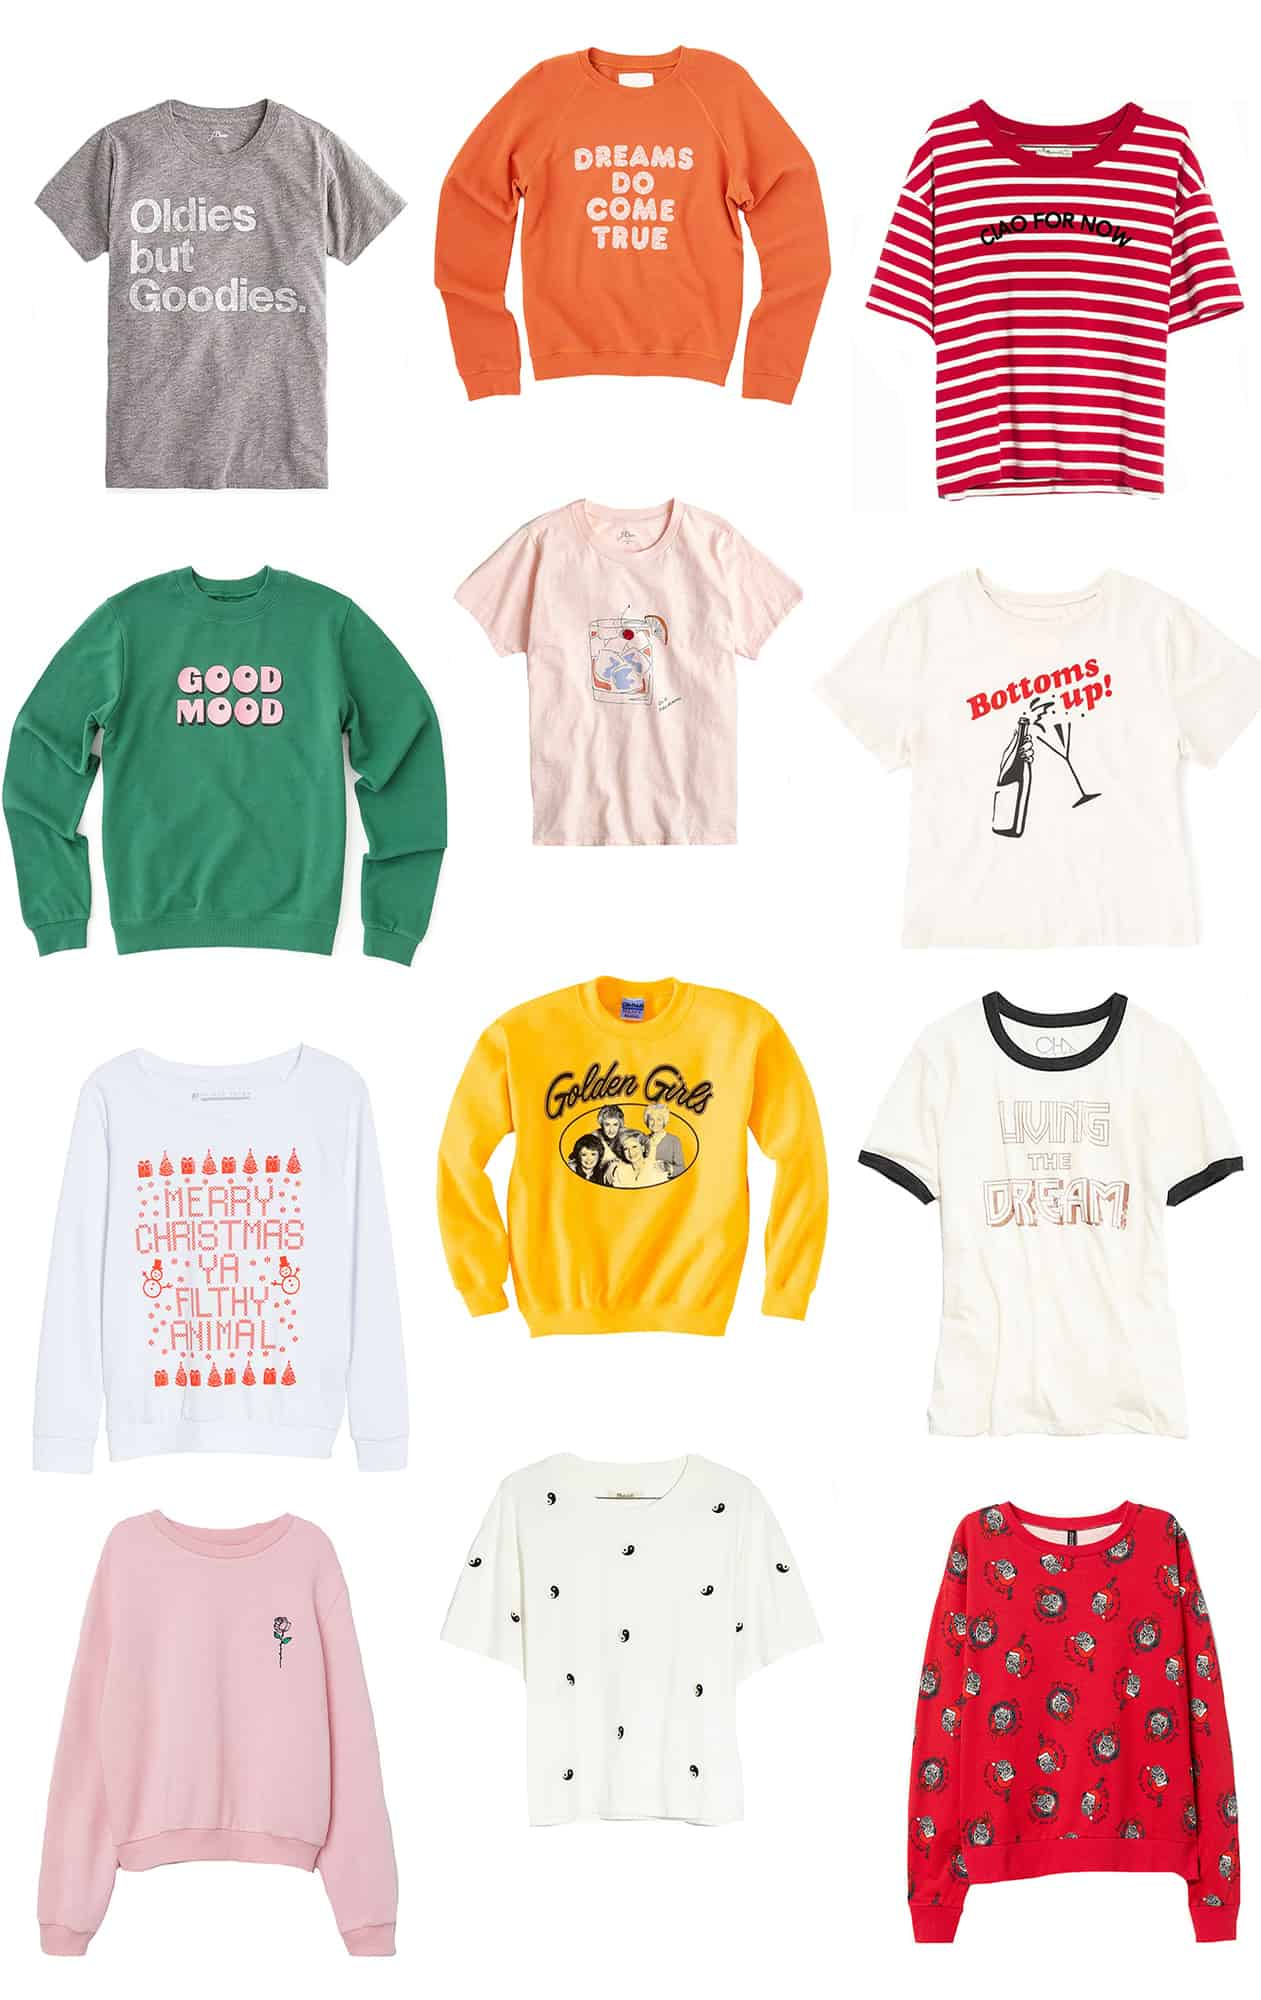 Our Favorite Graphic Tees & Sweatshirts